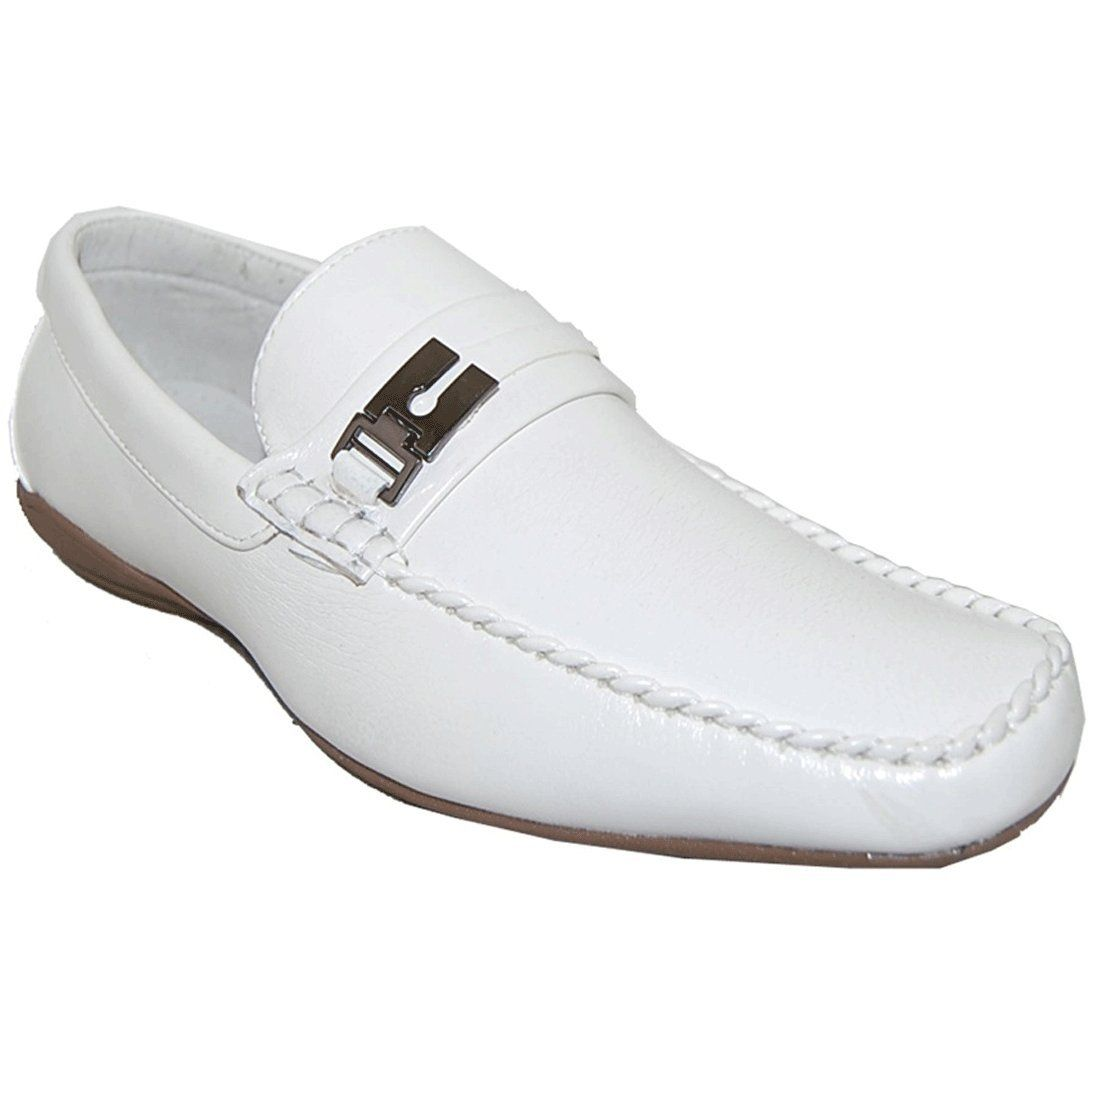 a366d993f7614 Amazon.com: Cousin Eddie shoes | All Things Griswold | Shoes ...